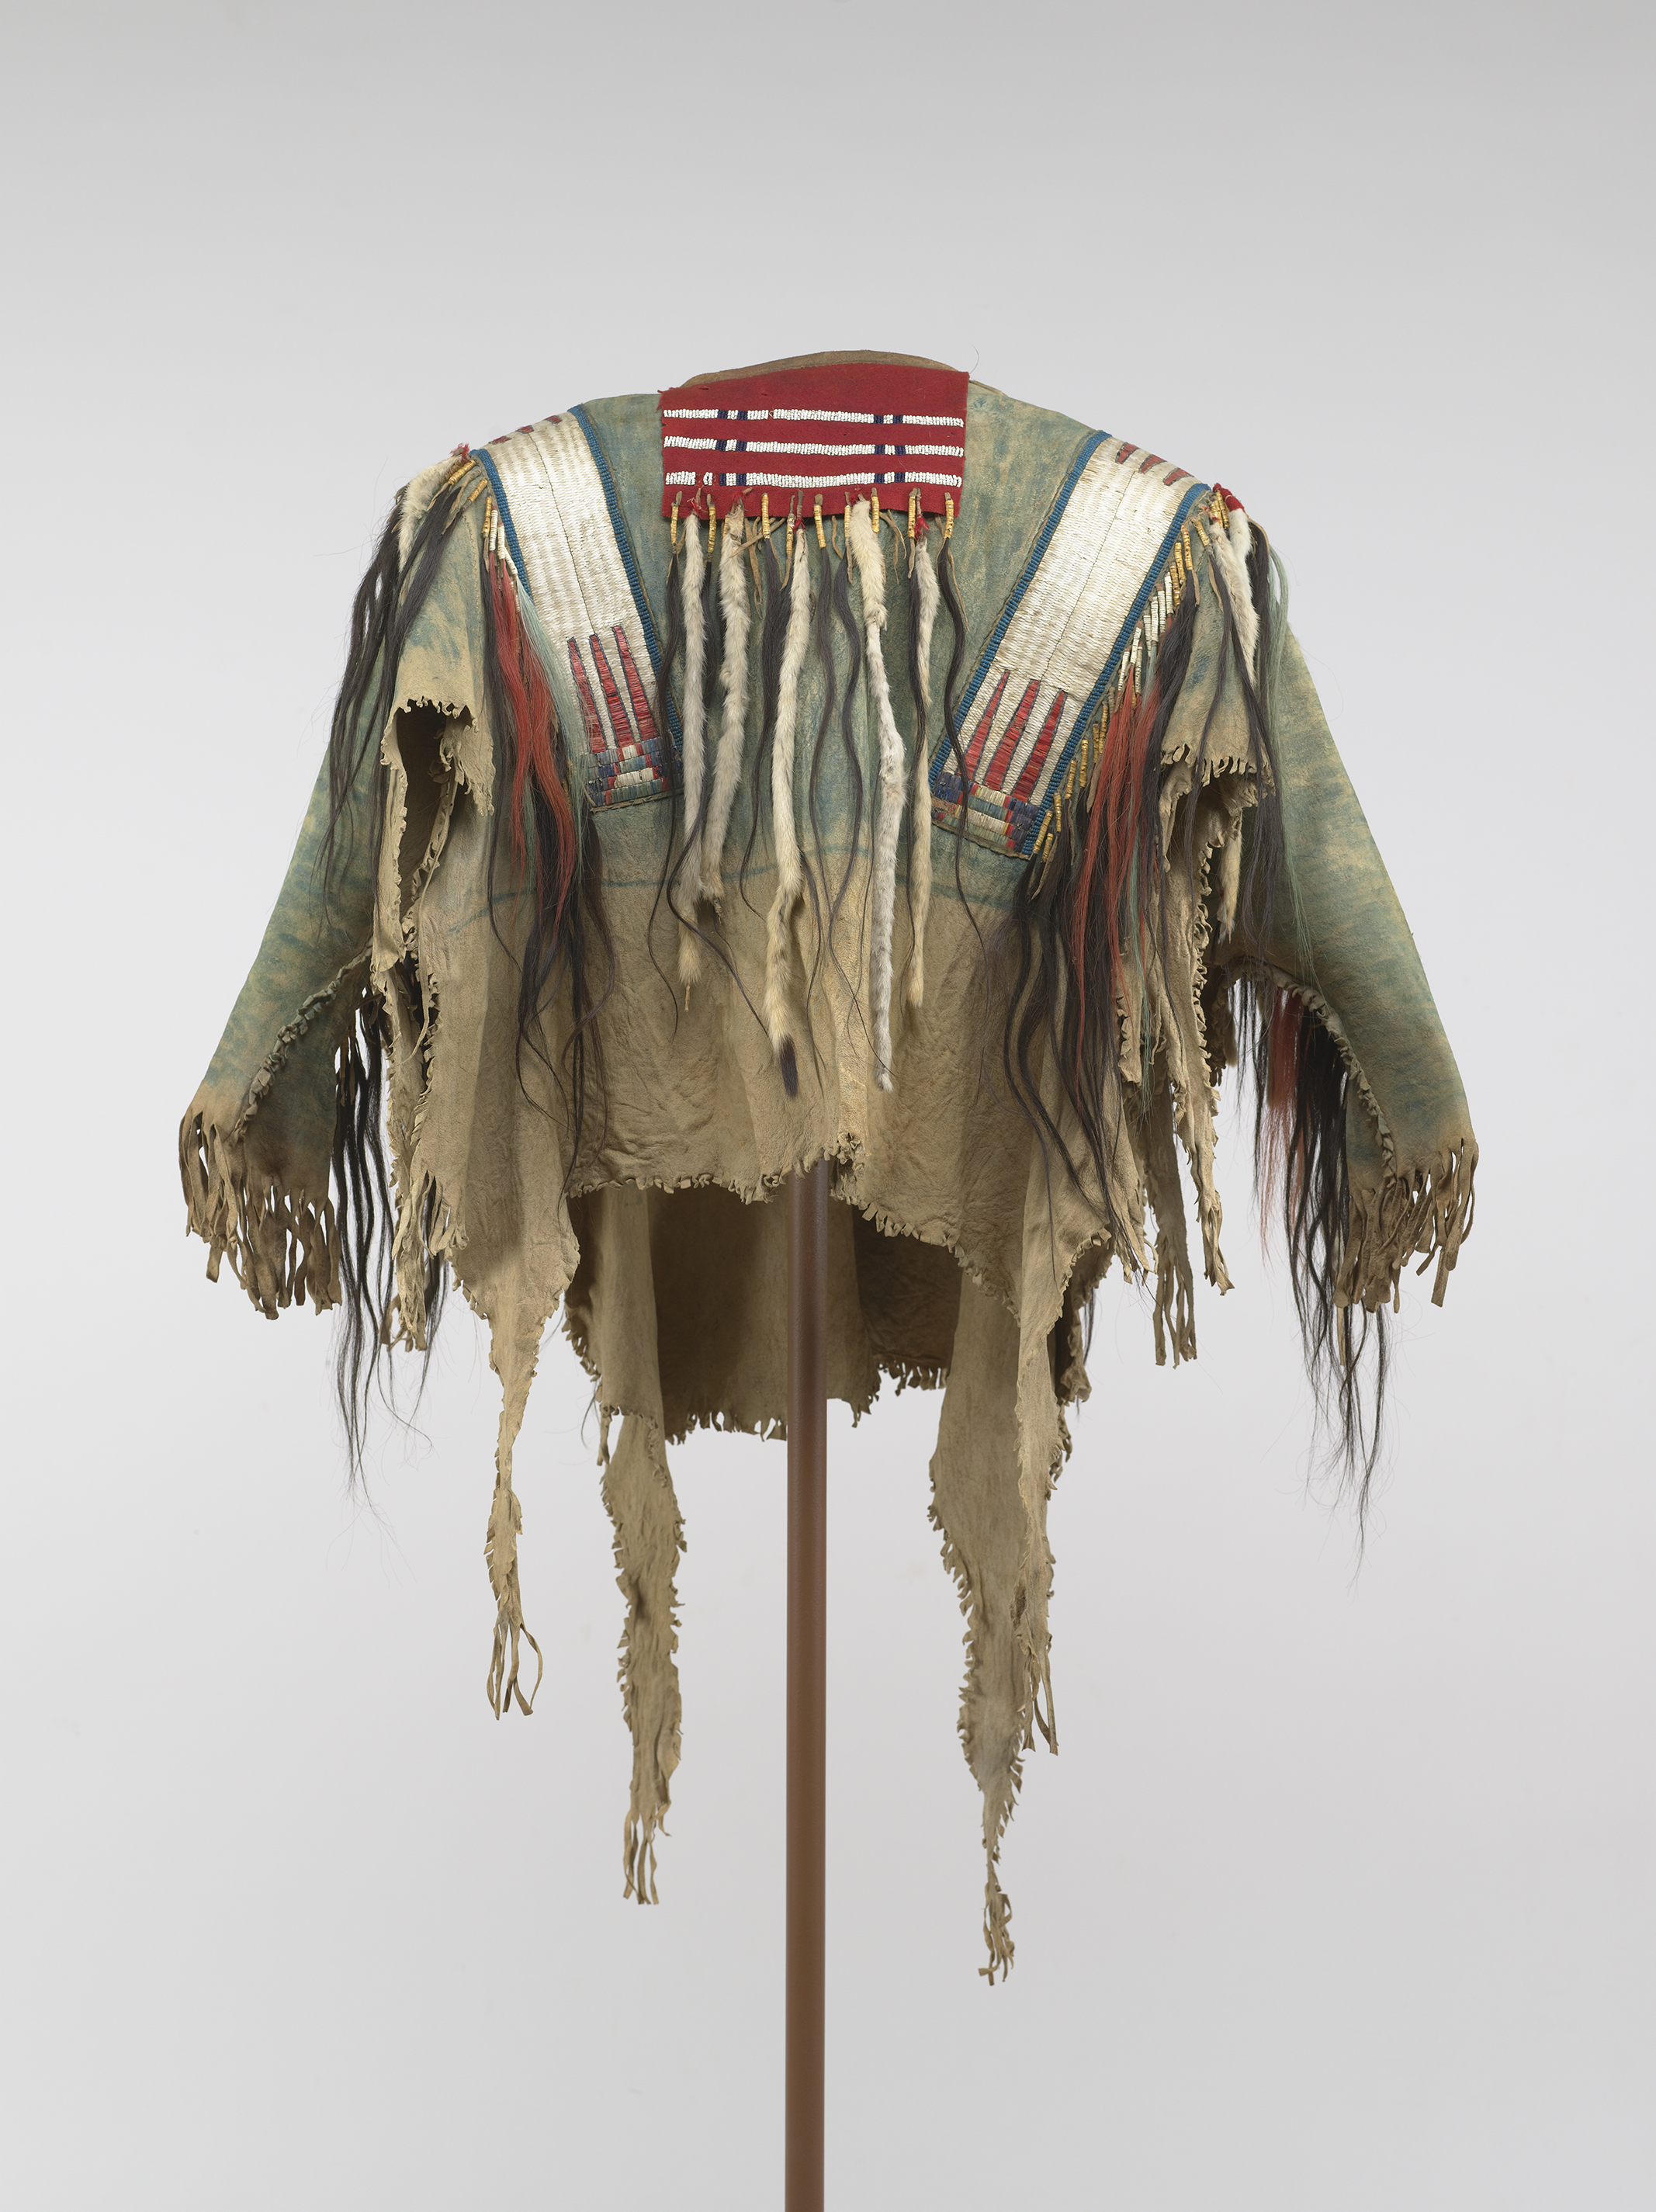 War Shirt , 1850-1880  Crow, elk or antelope hide, porcupine quills, ermine, horsehair, glass beads, pigment  Virginia Museum of Fine Arts; Adolph. D and Wilkins C. Williams Fund. Photo by Katherine Wetzel © Virginia Museum of Fine Arts